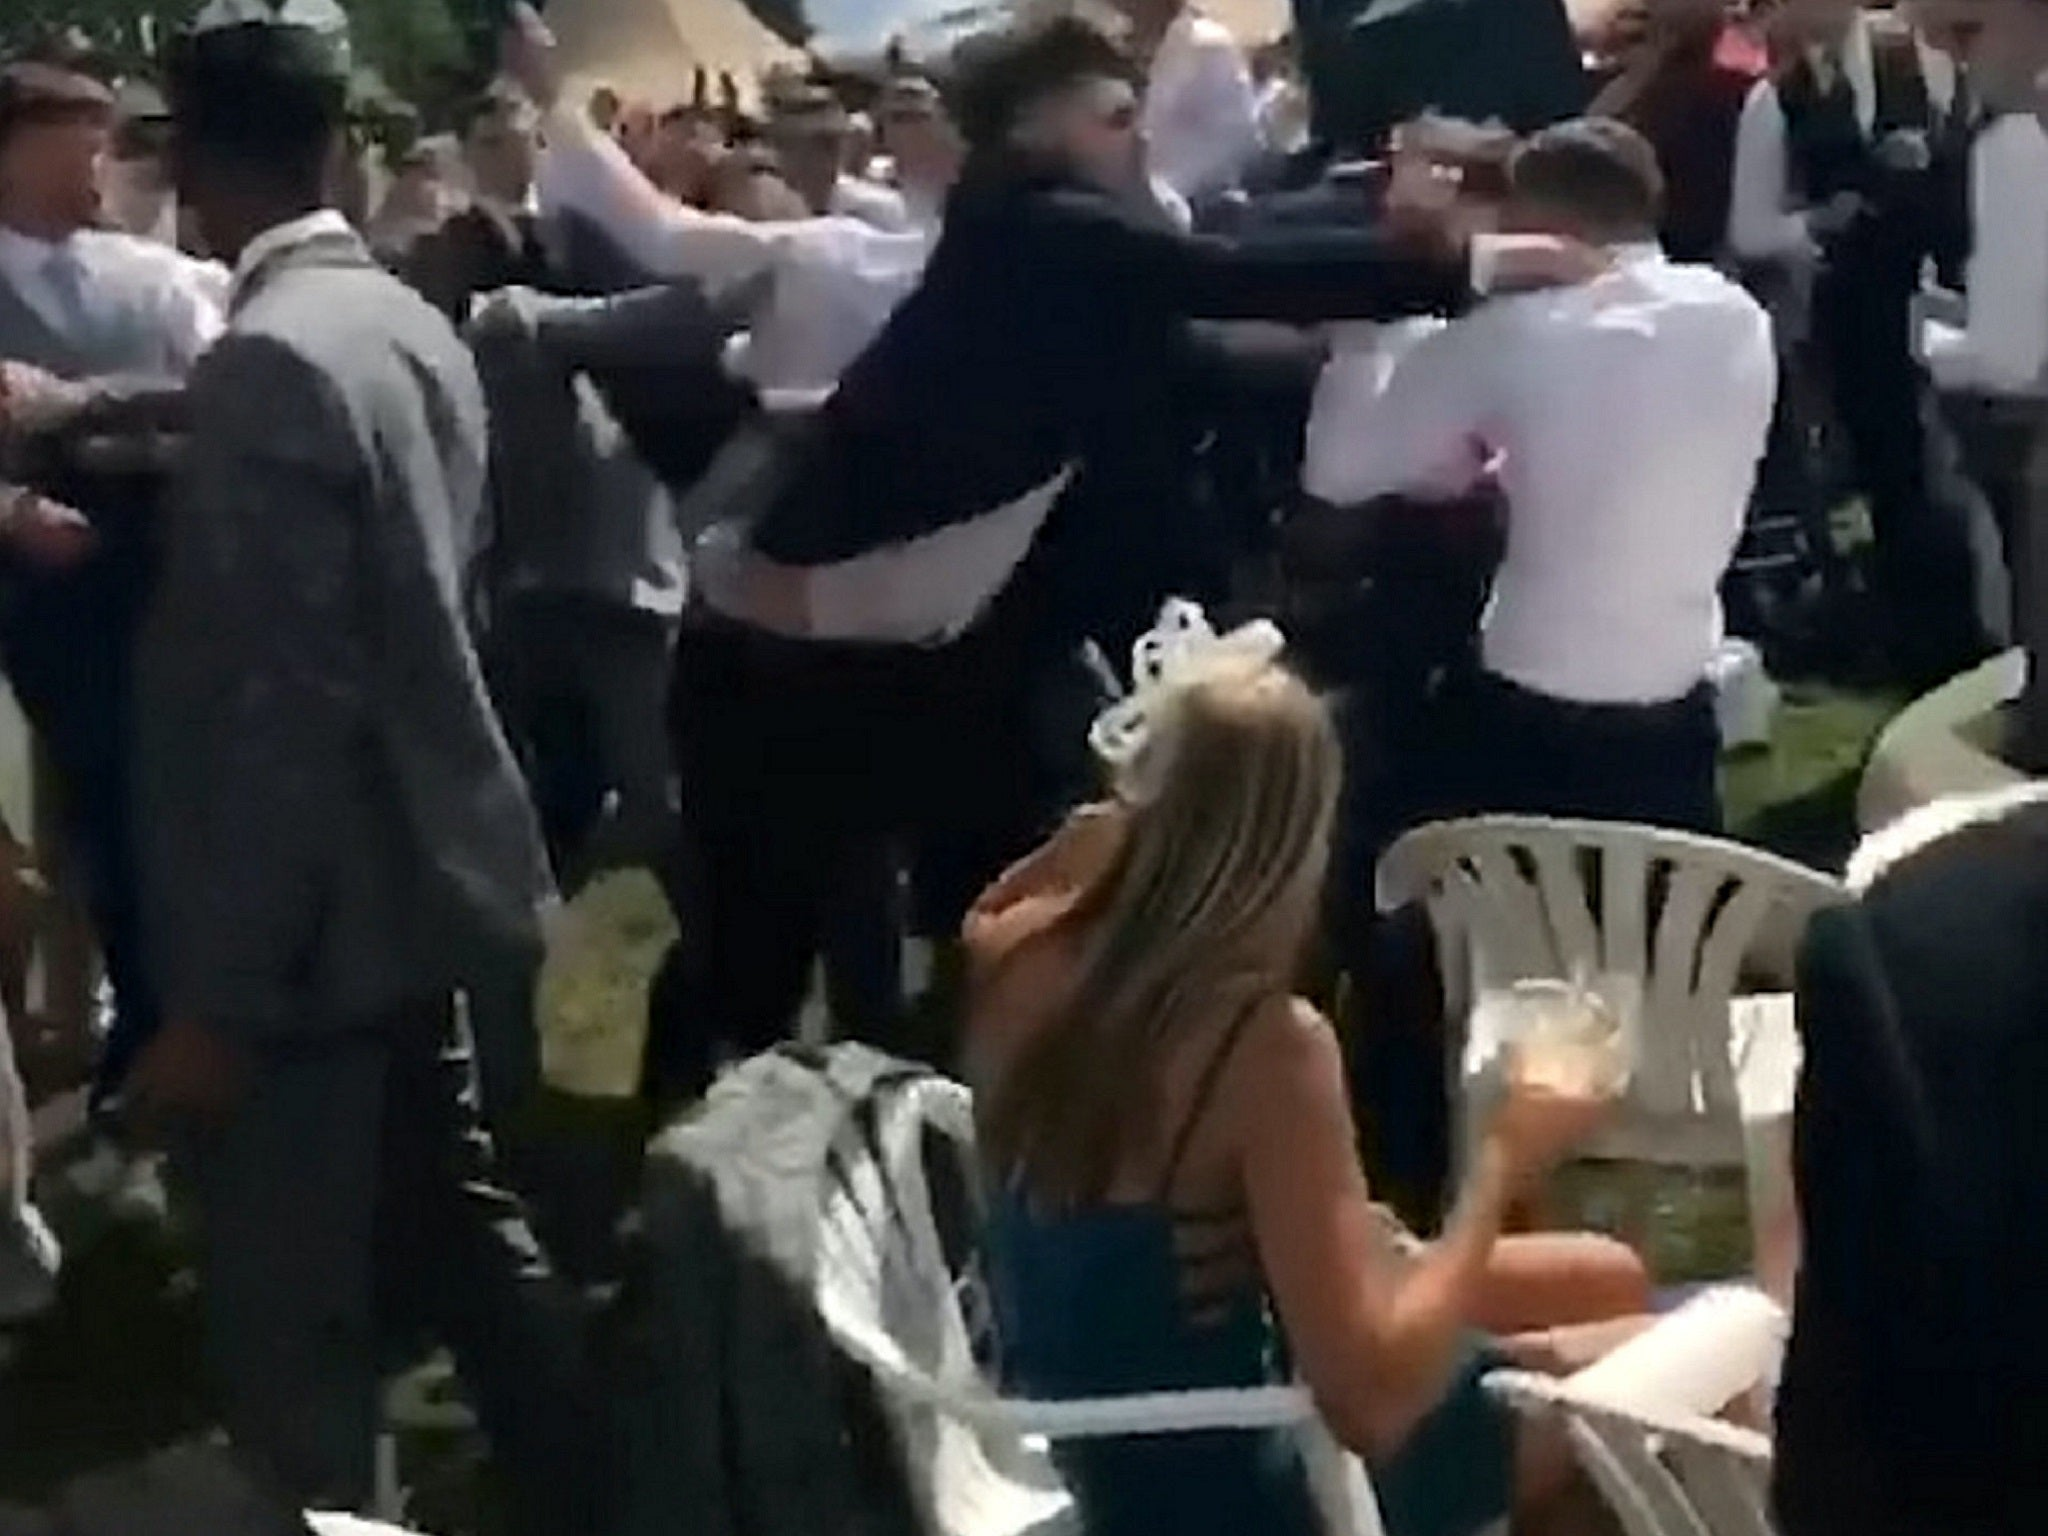 Watford FC footballer suspended after mass brawl at Royal Ascot